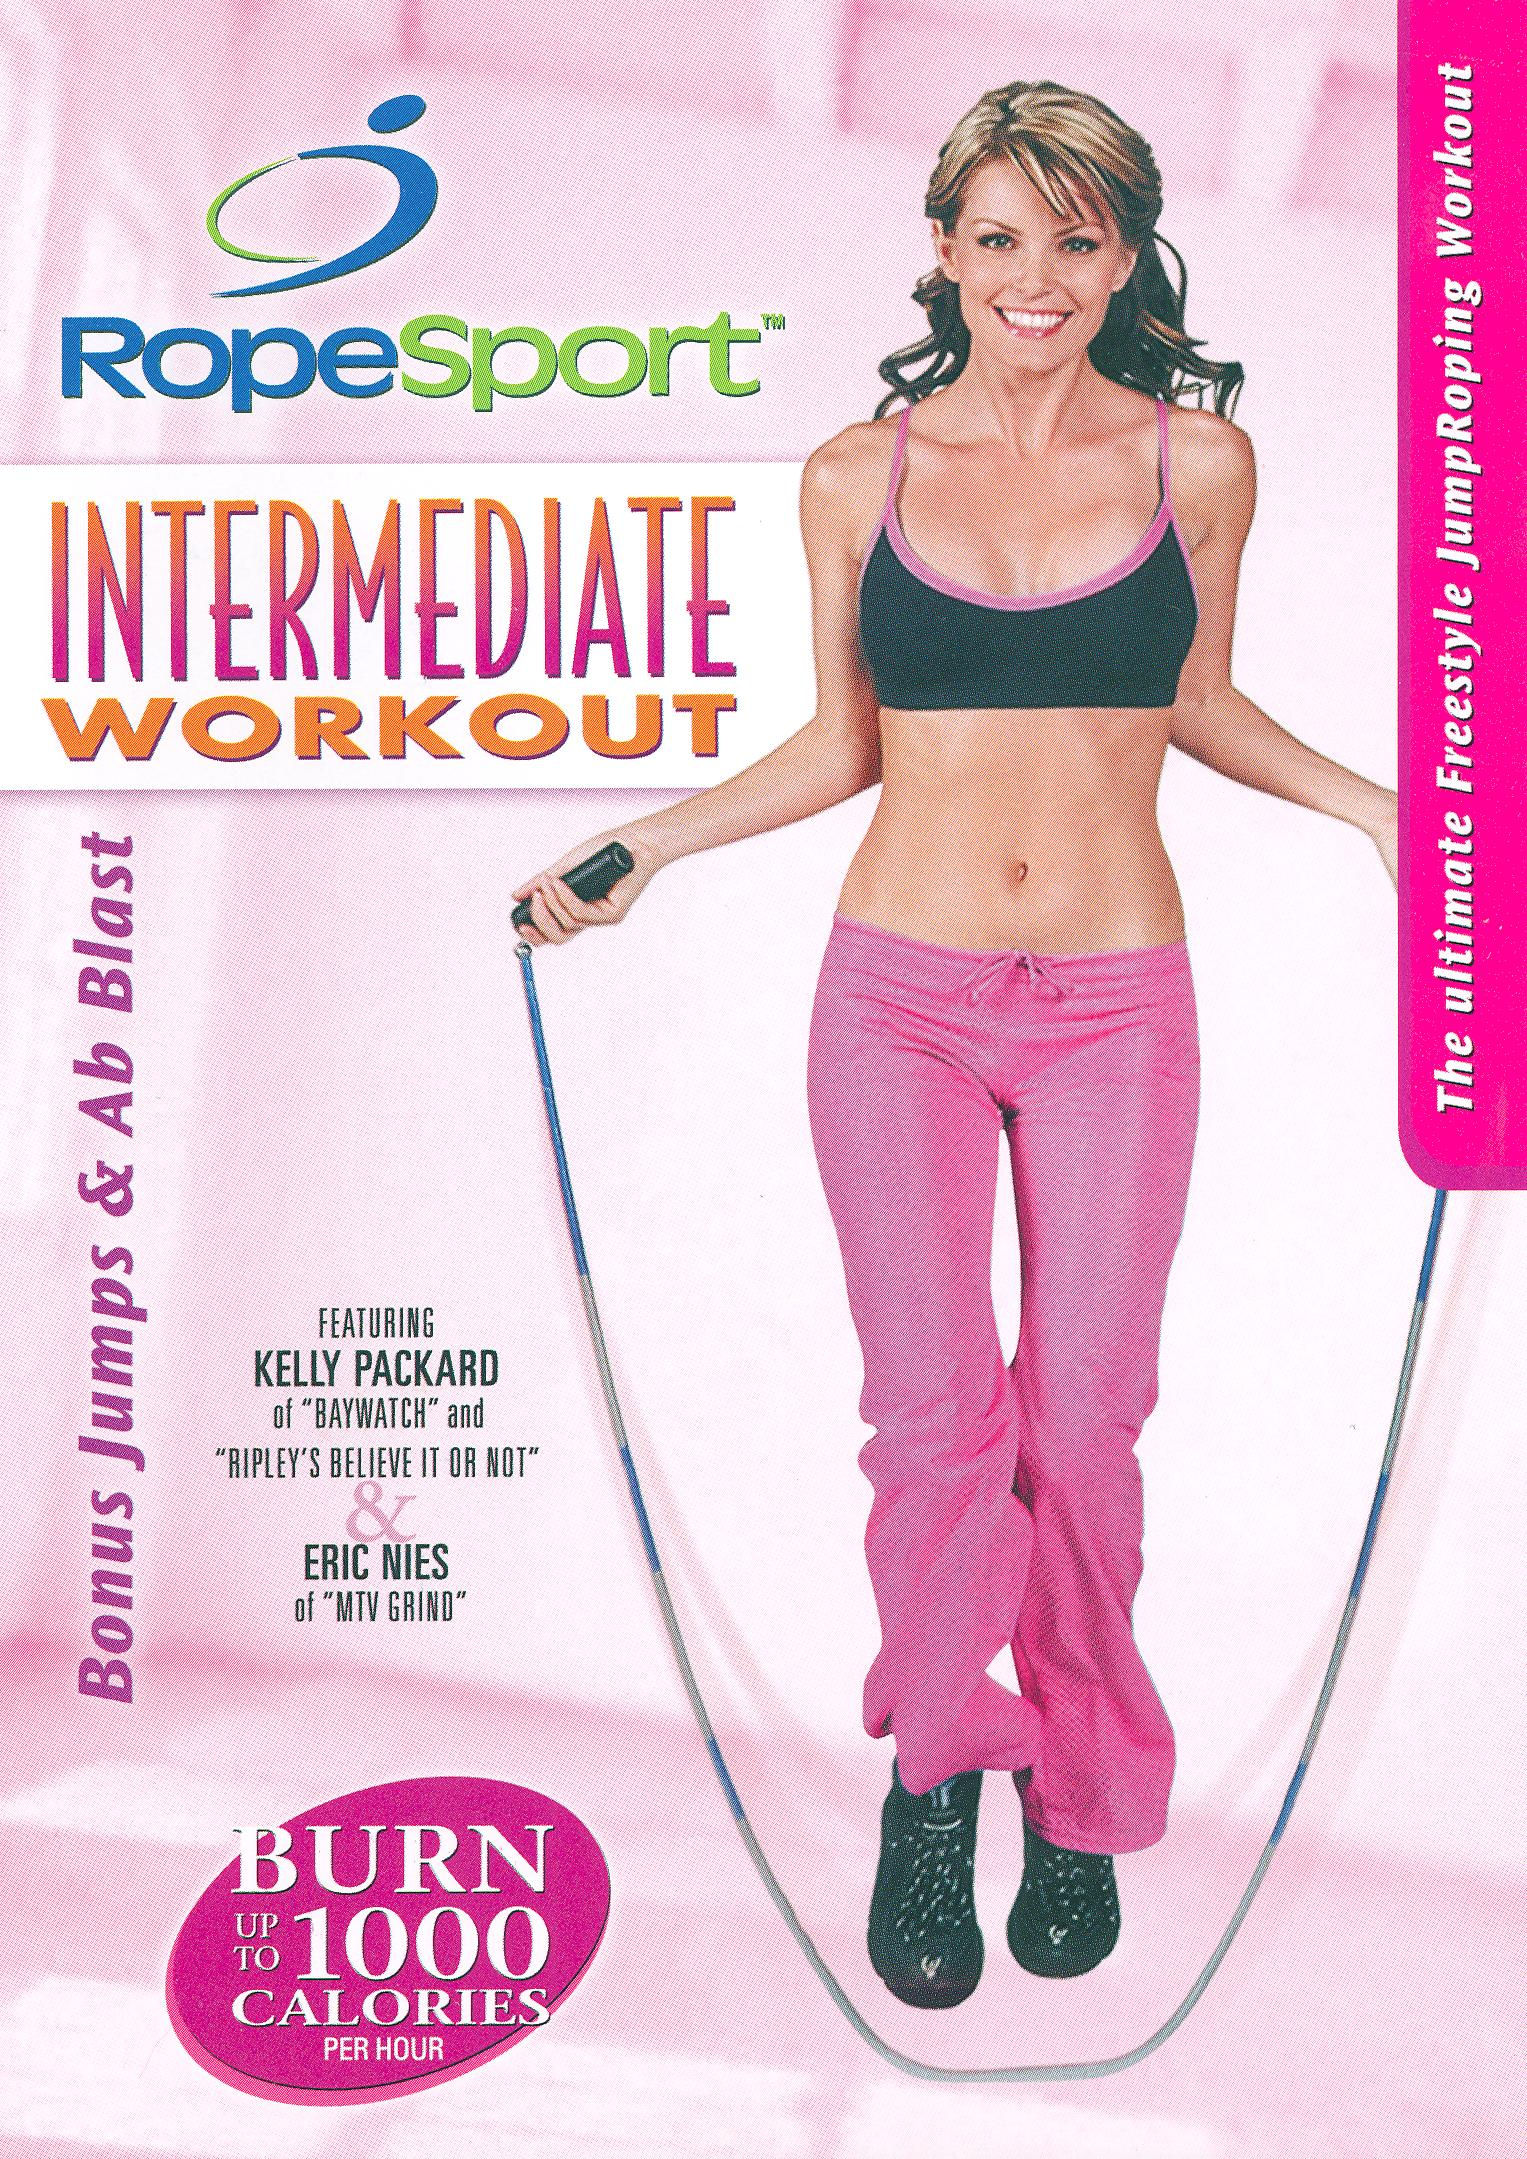 RopeSport: Intermediate Workout